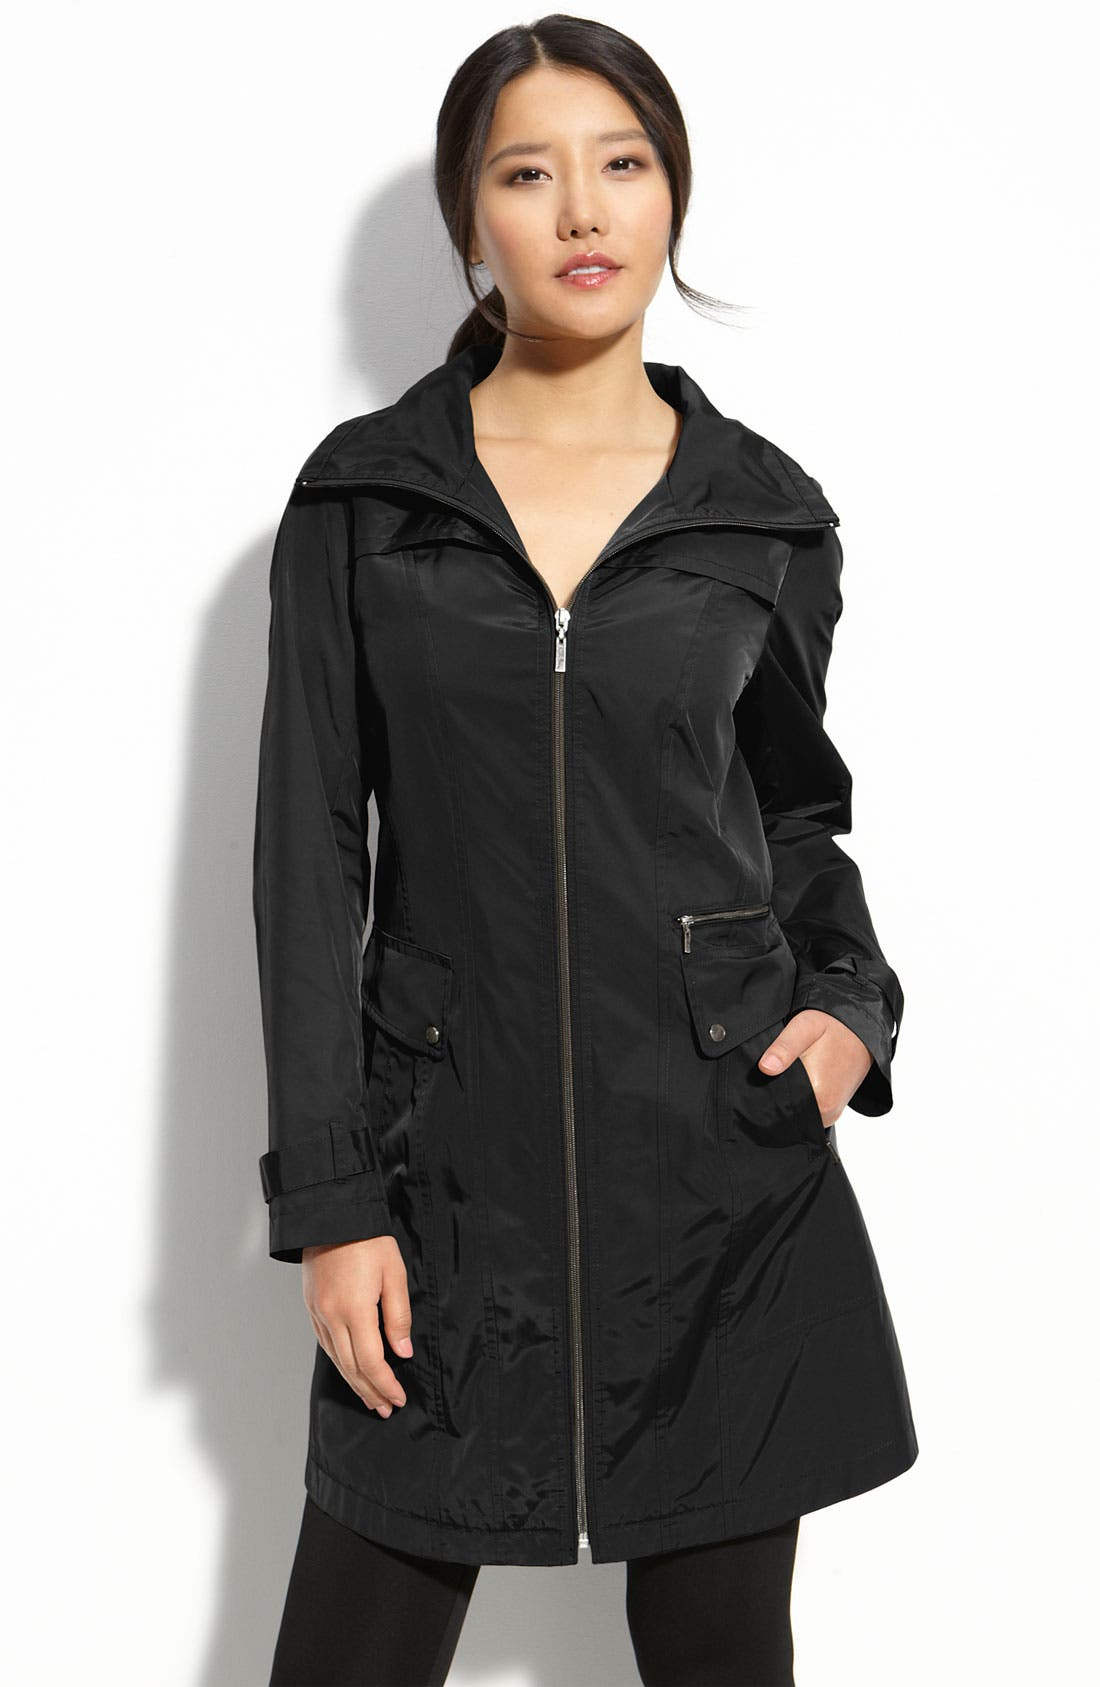 Alternate Image 1 Selected - Cole Haan Packable Raincoat